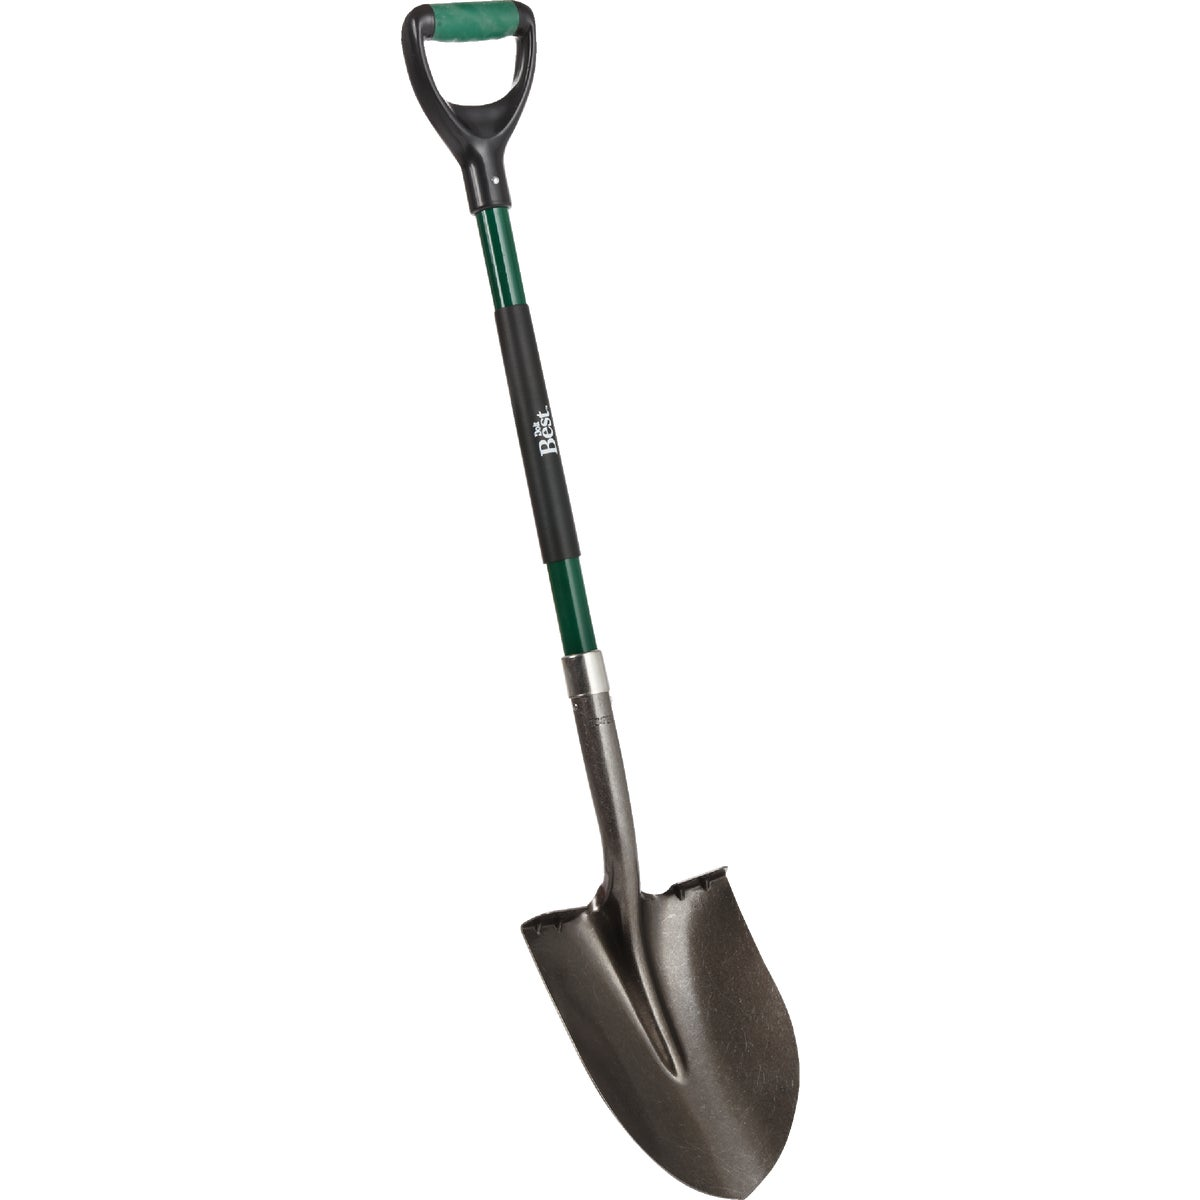 D-HDL ROUND PT SHOVEL - YN-8SJ3-5-1FD by Do it Best